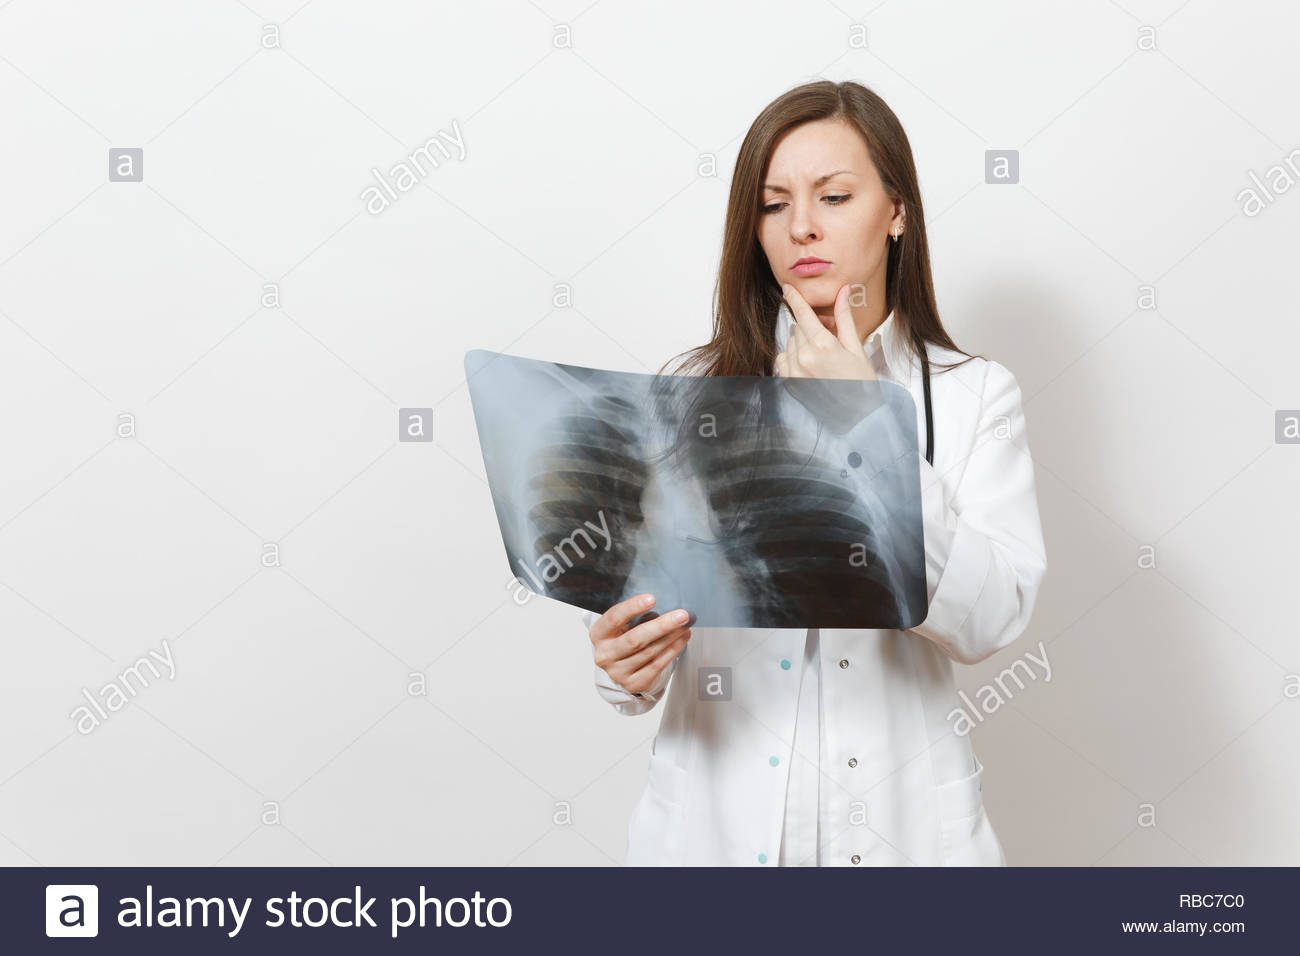 Perplexed focused doctor woman with X-ray of lungs, fluorography, roentgen isolated on white background. Female doctor in medical gown stethoscope. He - Stock Image